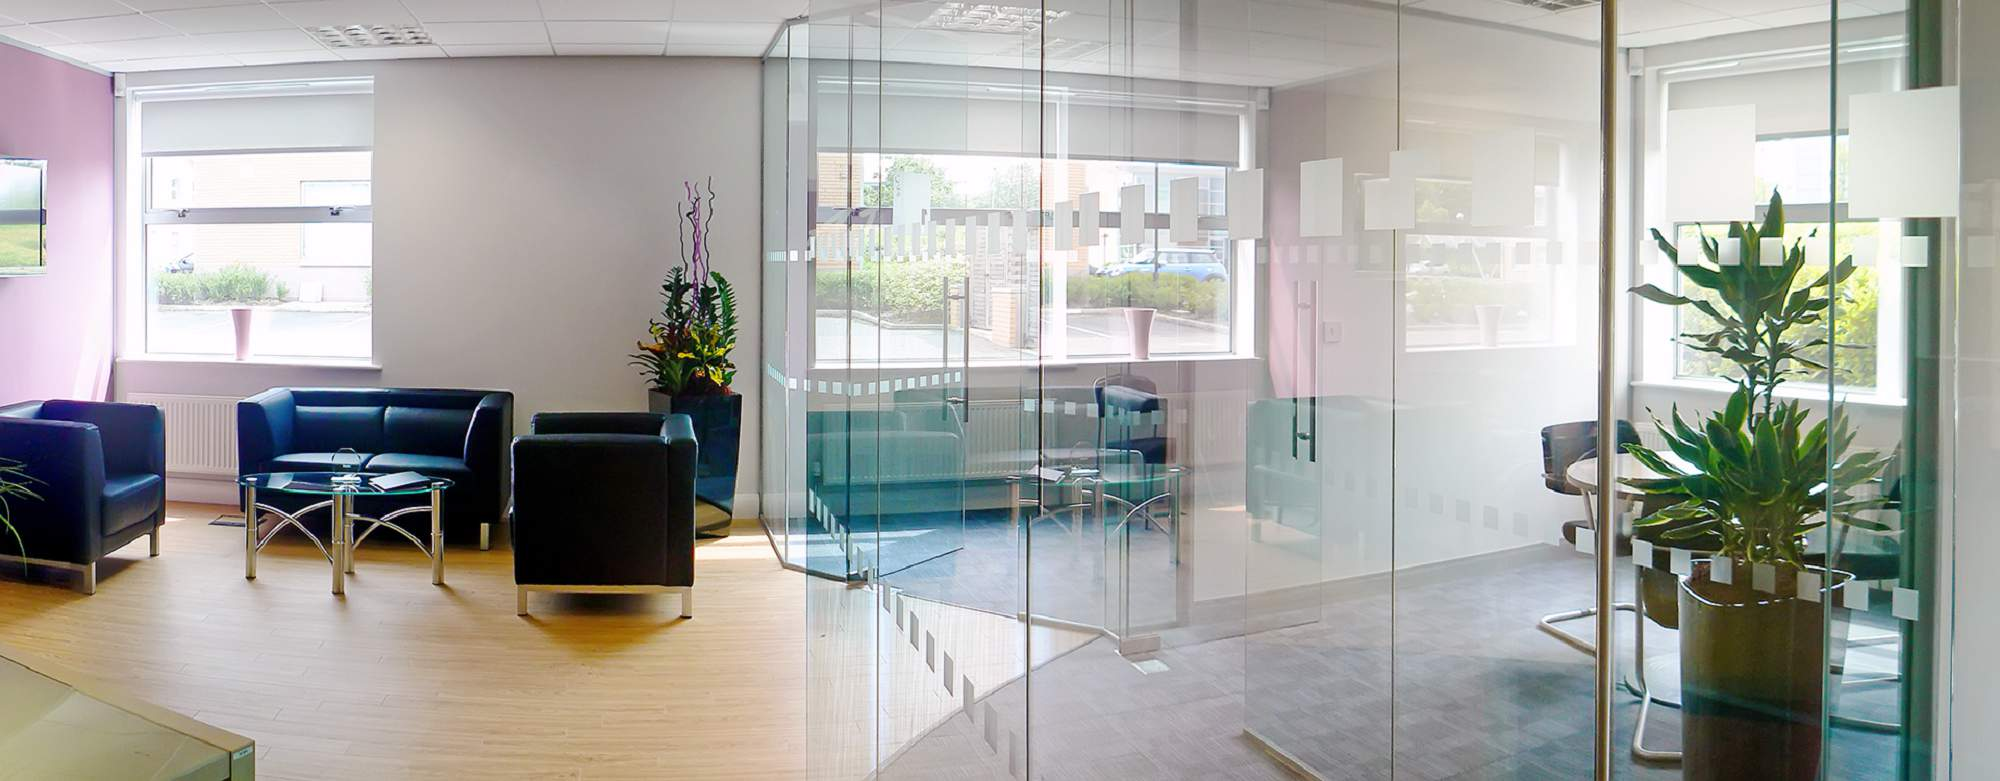 Glass Office Partitioning Glazed Office Partitions